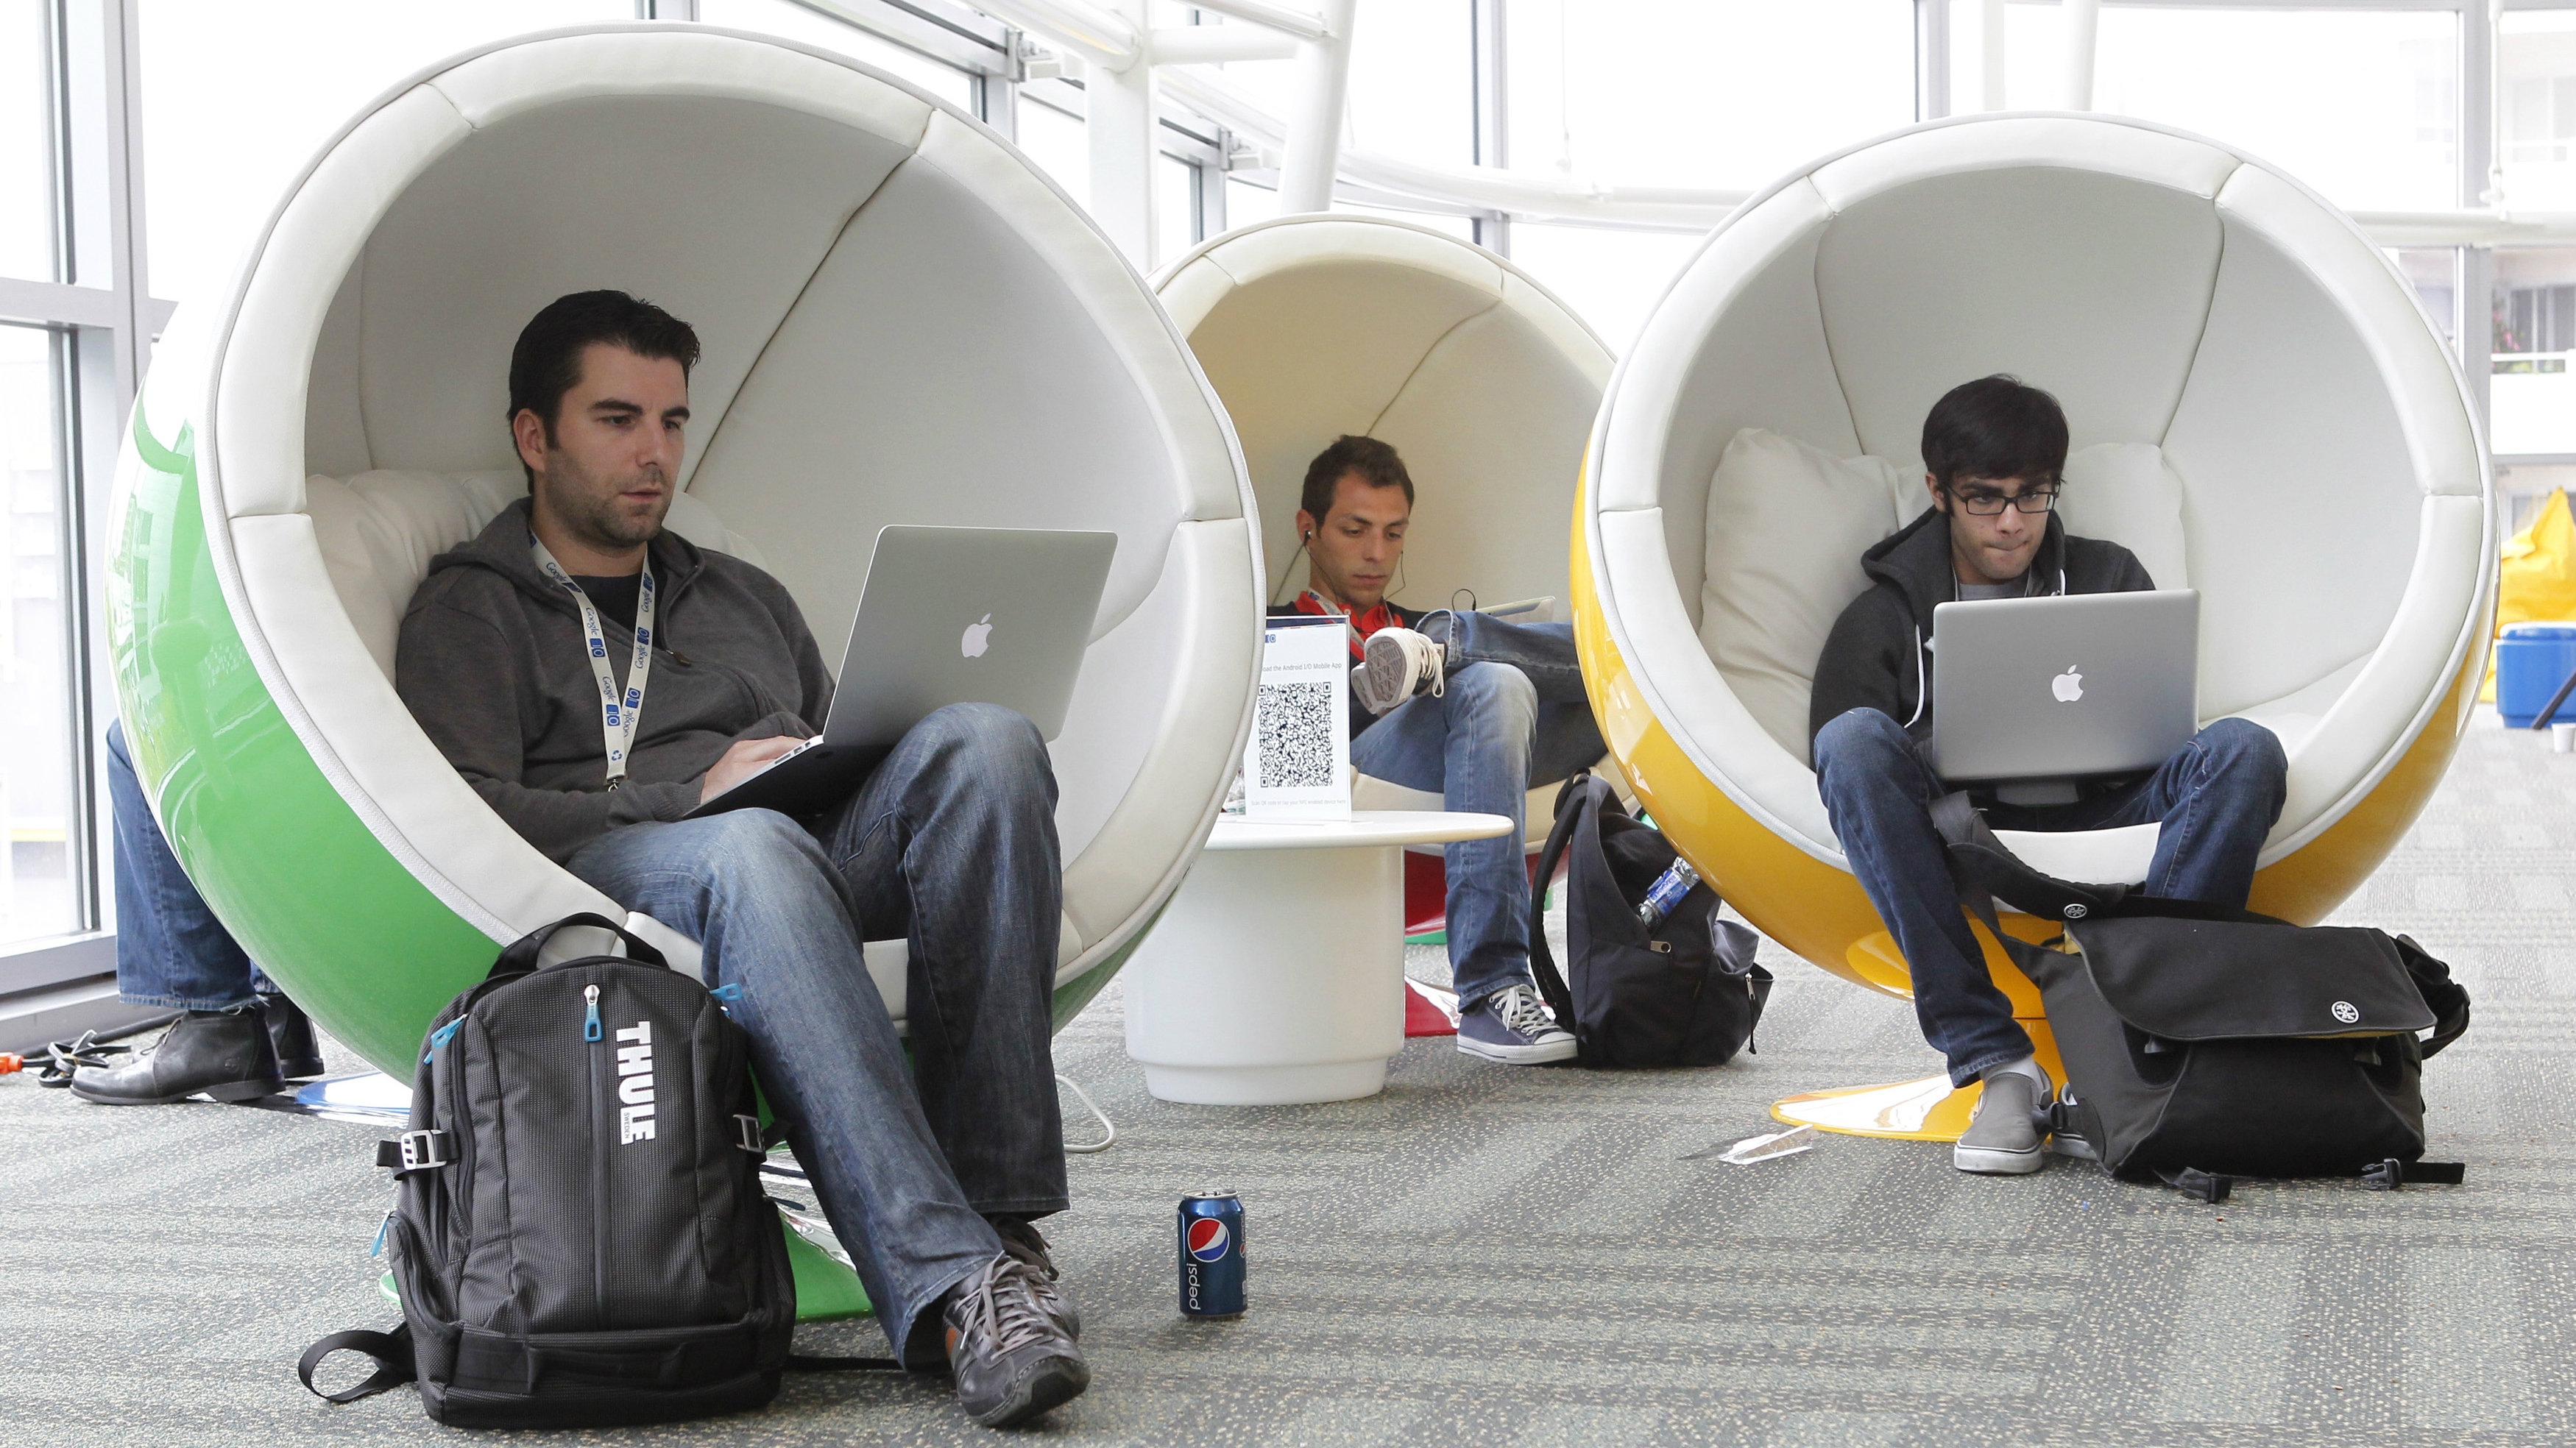 Matthias Klabbenbach (L), of eBay, Massimo Paladin (2nd L), of Cern, and Shahruz Shaukat, of University of California at Davis, take a break between events at the Google I/O Developers Conference in the Moscone Center in San Francisco, California, May 11, 2011. REUTERS/Beck Diefenbach (UNITED STATES - Tags: SCI TECH BUSINESS)